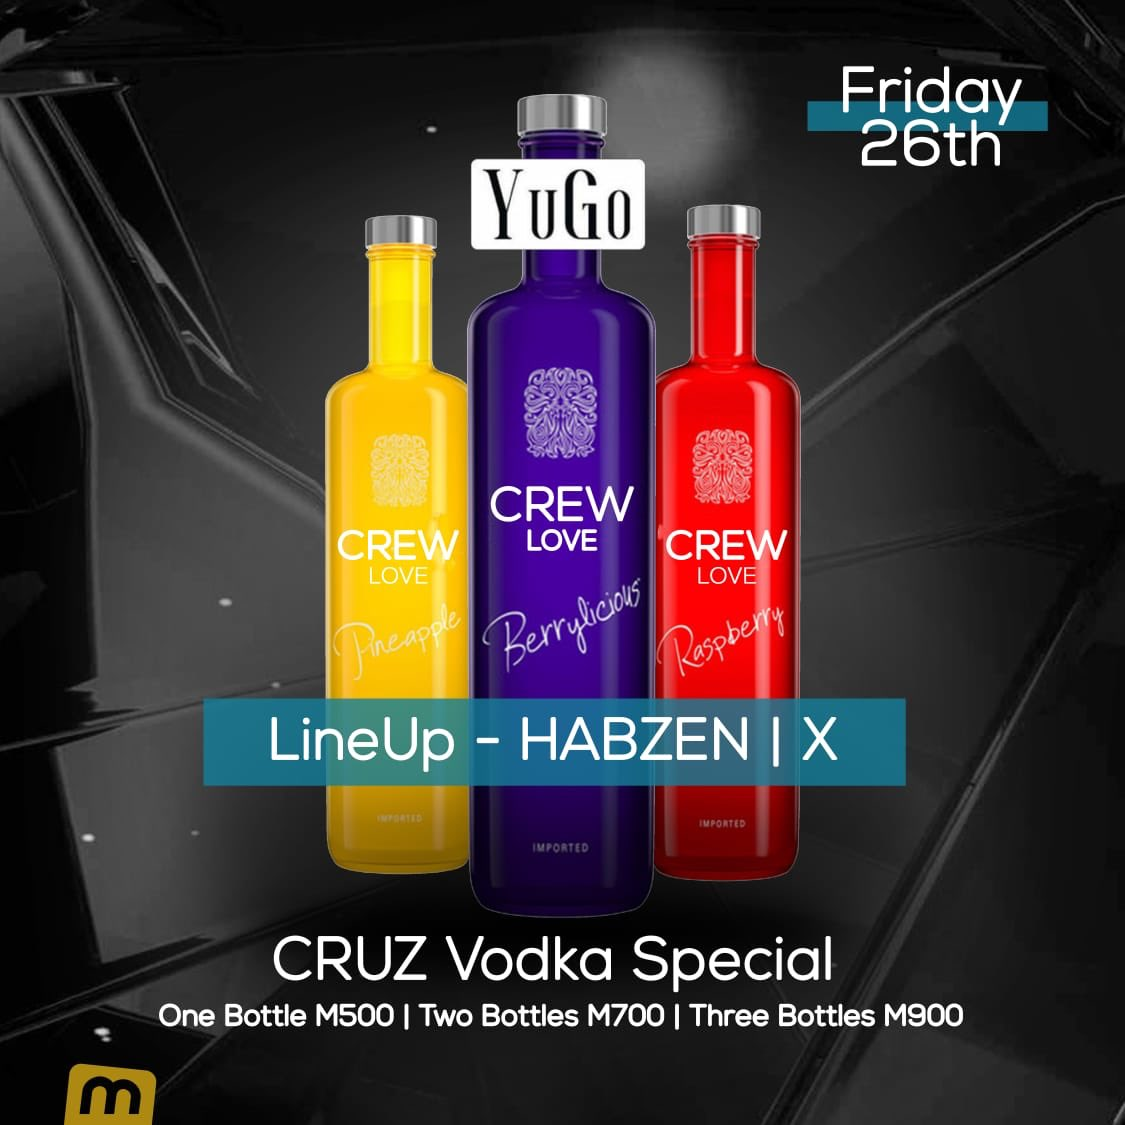 test Twitter Media - We're back next week with #CrewLove like we never left 😎 but check, new look lurking 🎨🎭👀   Come Cruz with us 🍾 It's a specials night 😏 not just special but specials ✨ Friday, July 26th 🥂 https://t.co/UYCuXVDJux